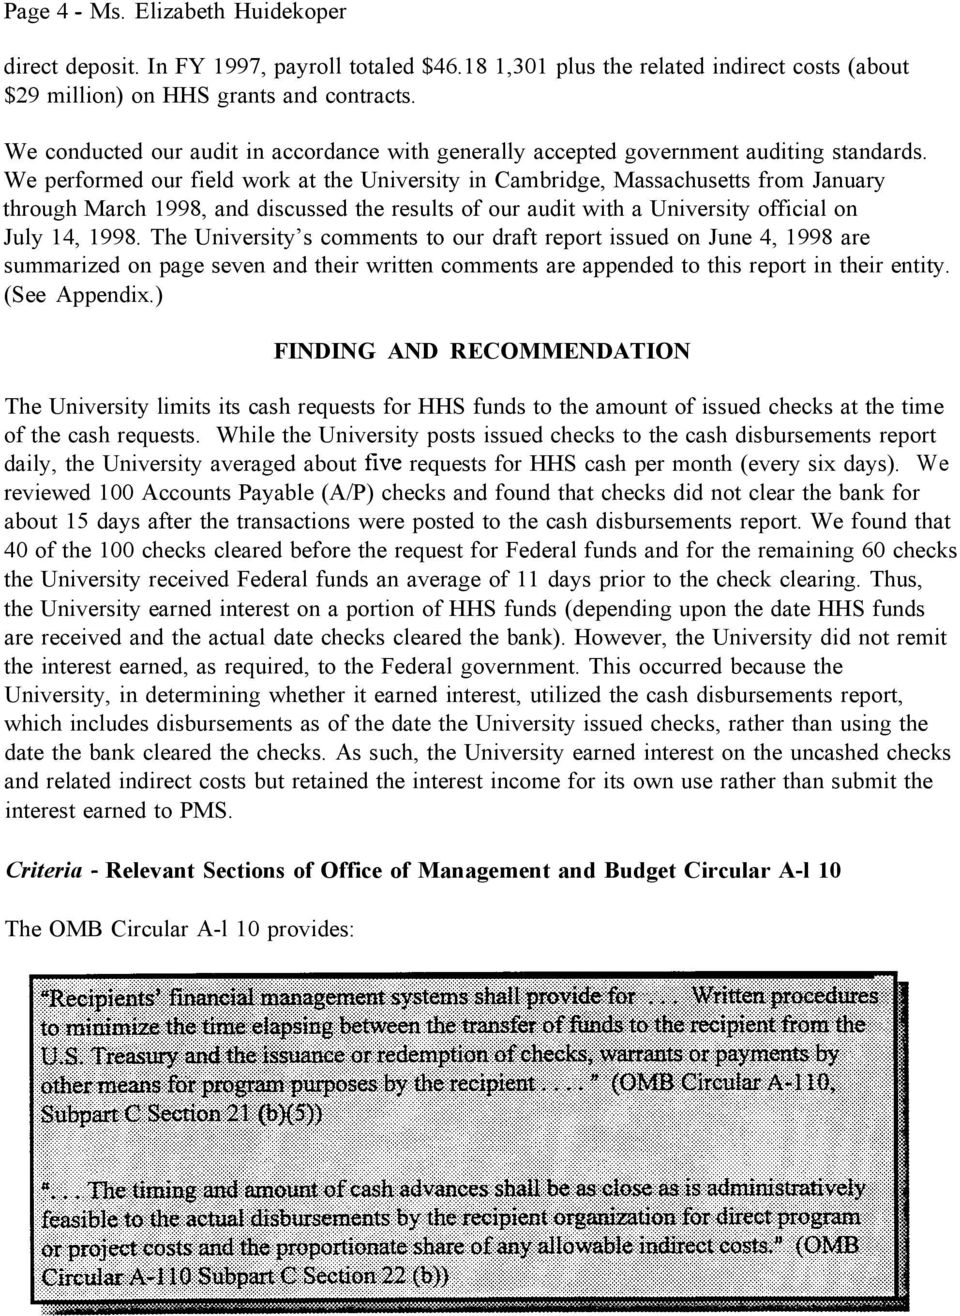 We performed our field work at the University in Cambridge, Massachusetts from January through March 1998, and discussed the results of our audit with a University official on July 14, 1998.